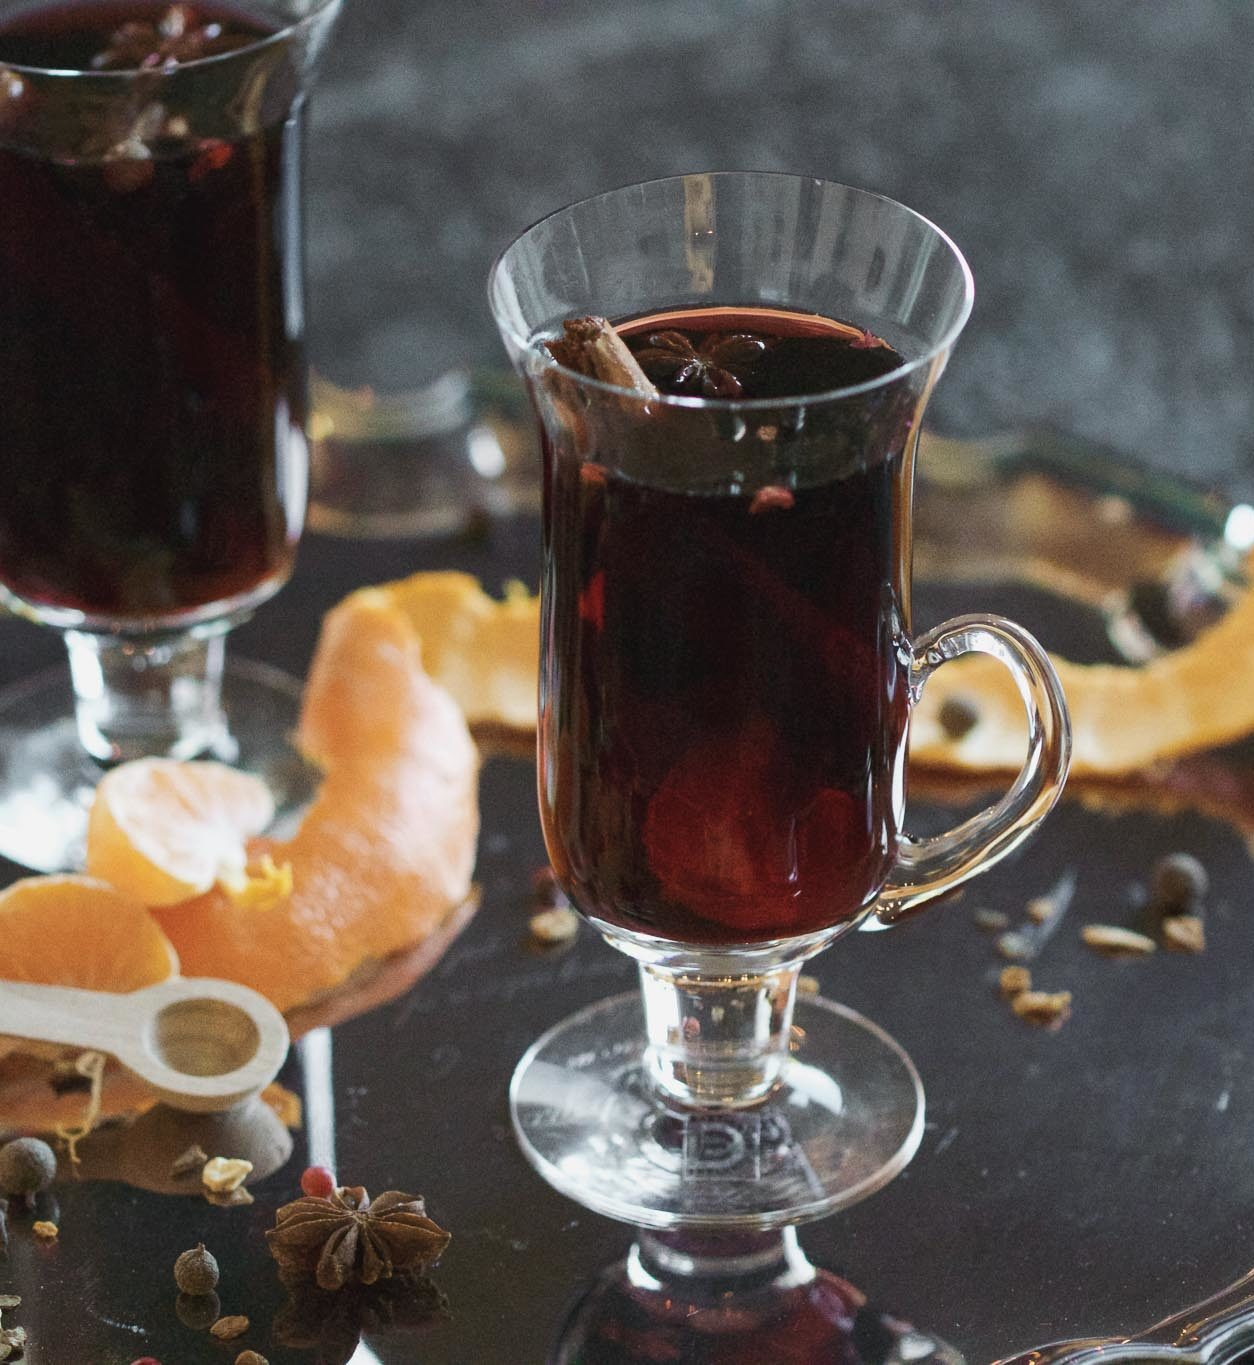 vin brule also is called mulled wine internationally is a popular hot drink for the winter in Rome and Italy